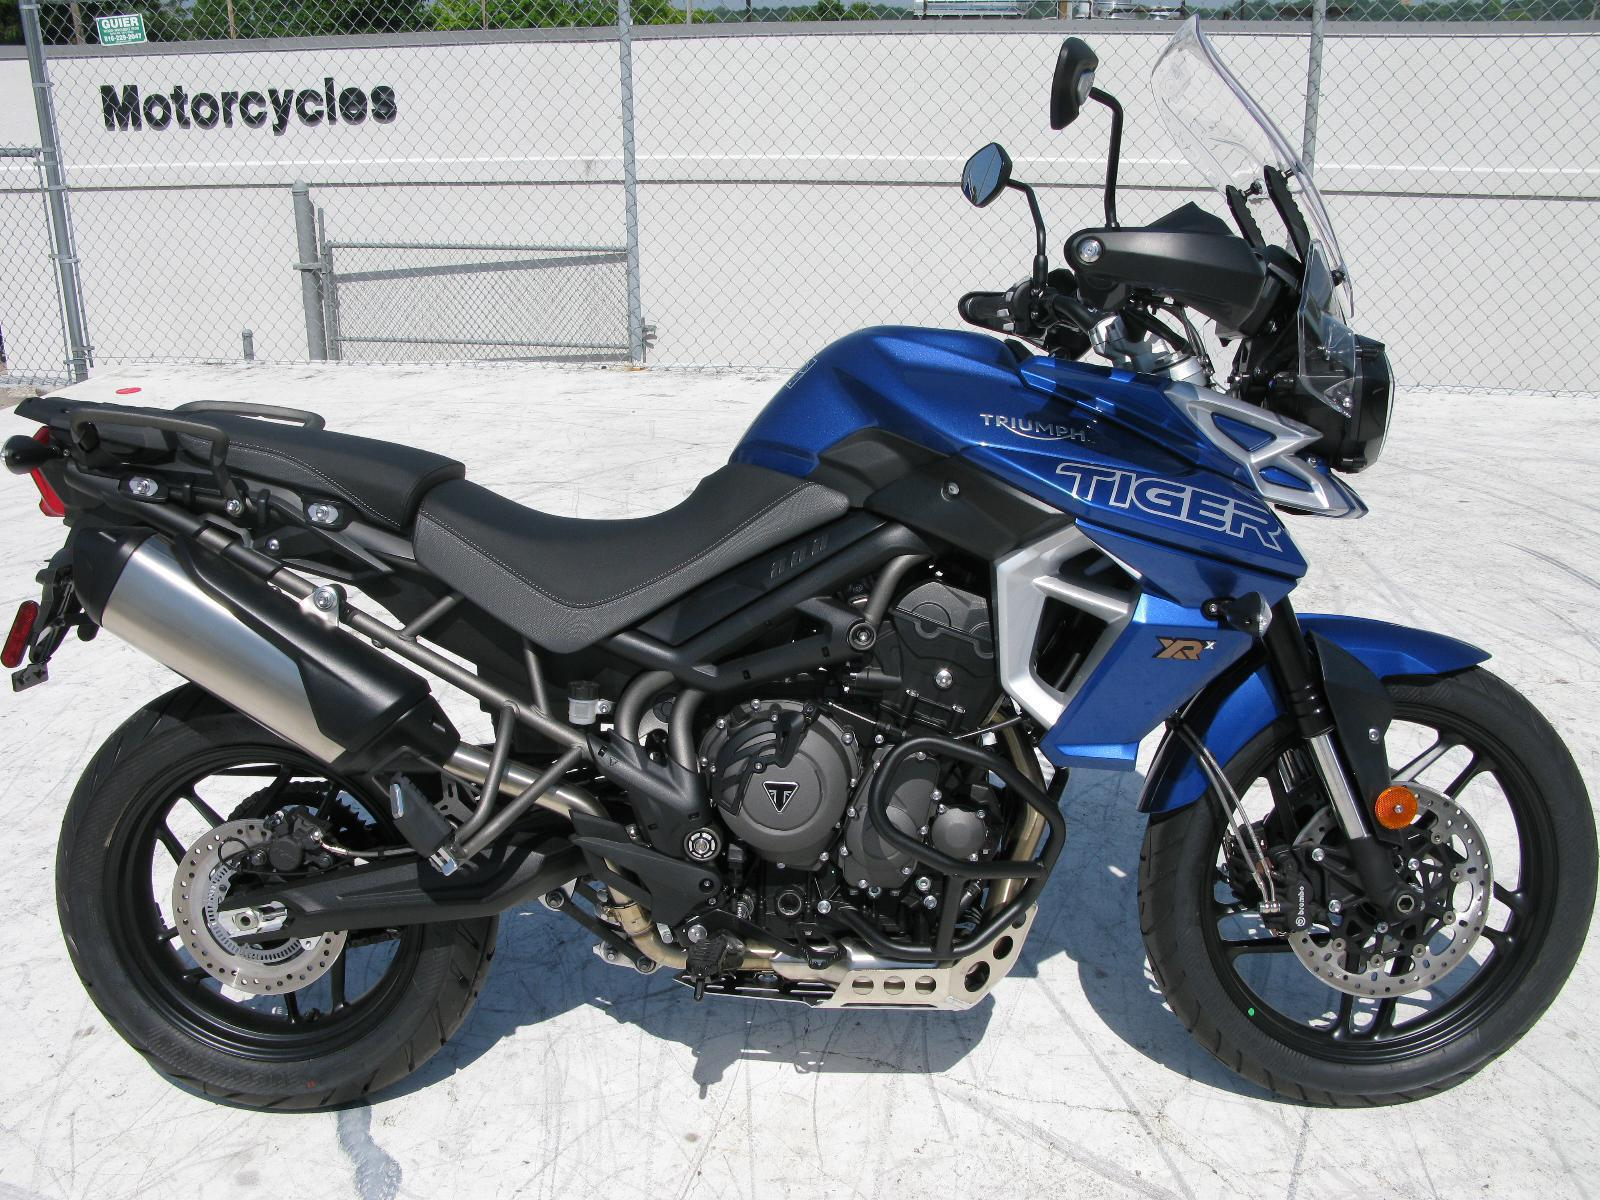 2018 Triumph Tiger 800 Xrx Free Saddlebags Till April 30 For Sale In